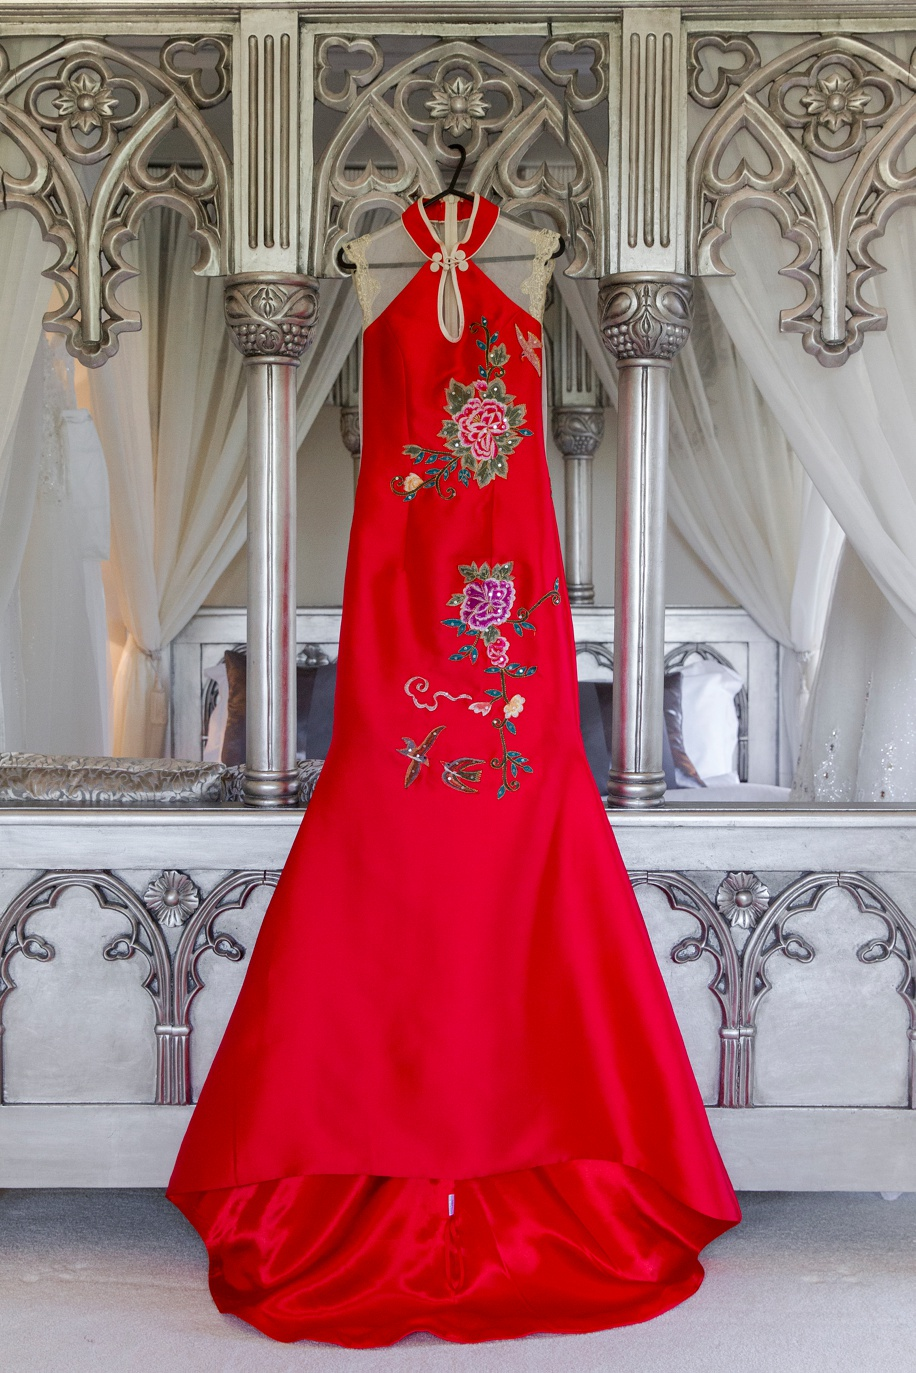 Stunning Chinese red wedding dress - Manor by the Lake - Martin Bell Photography